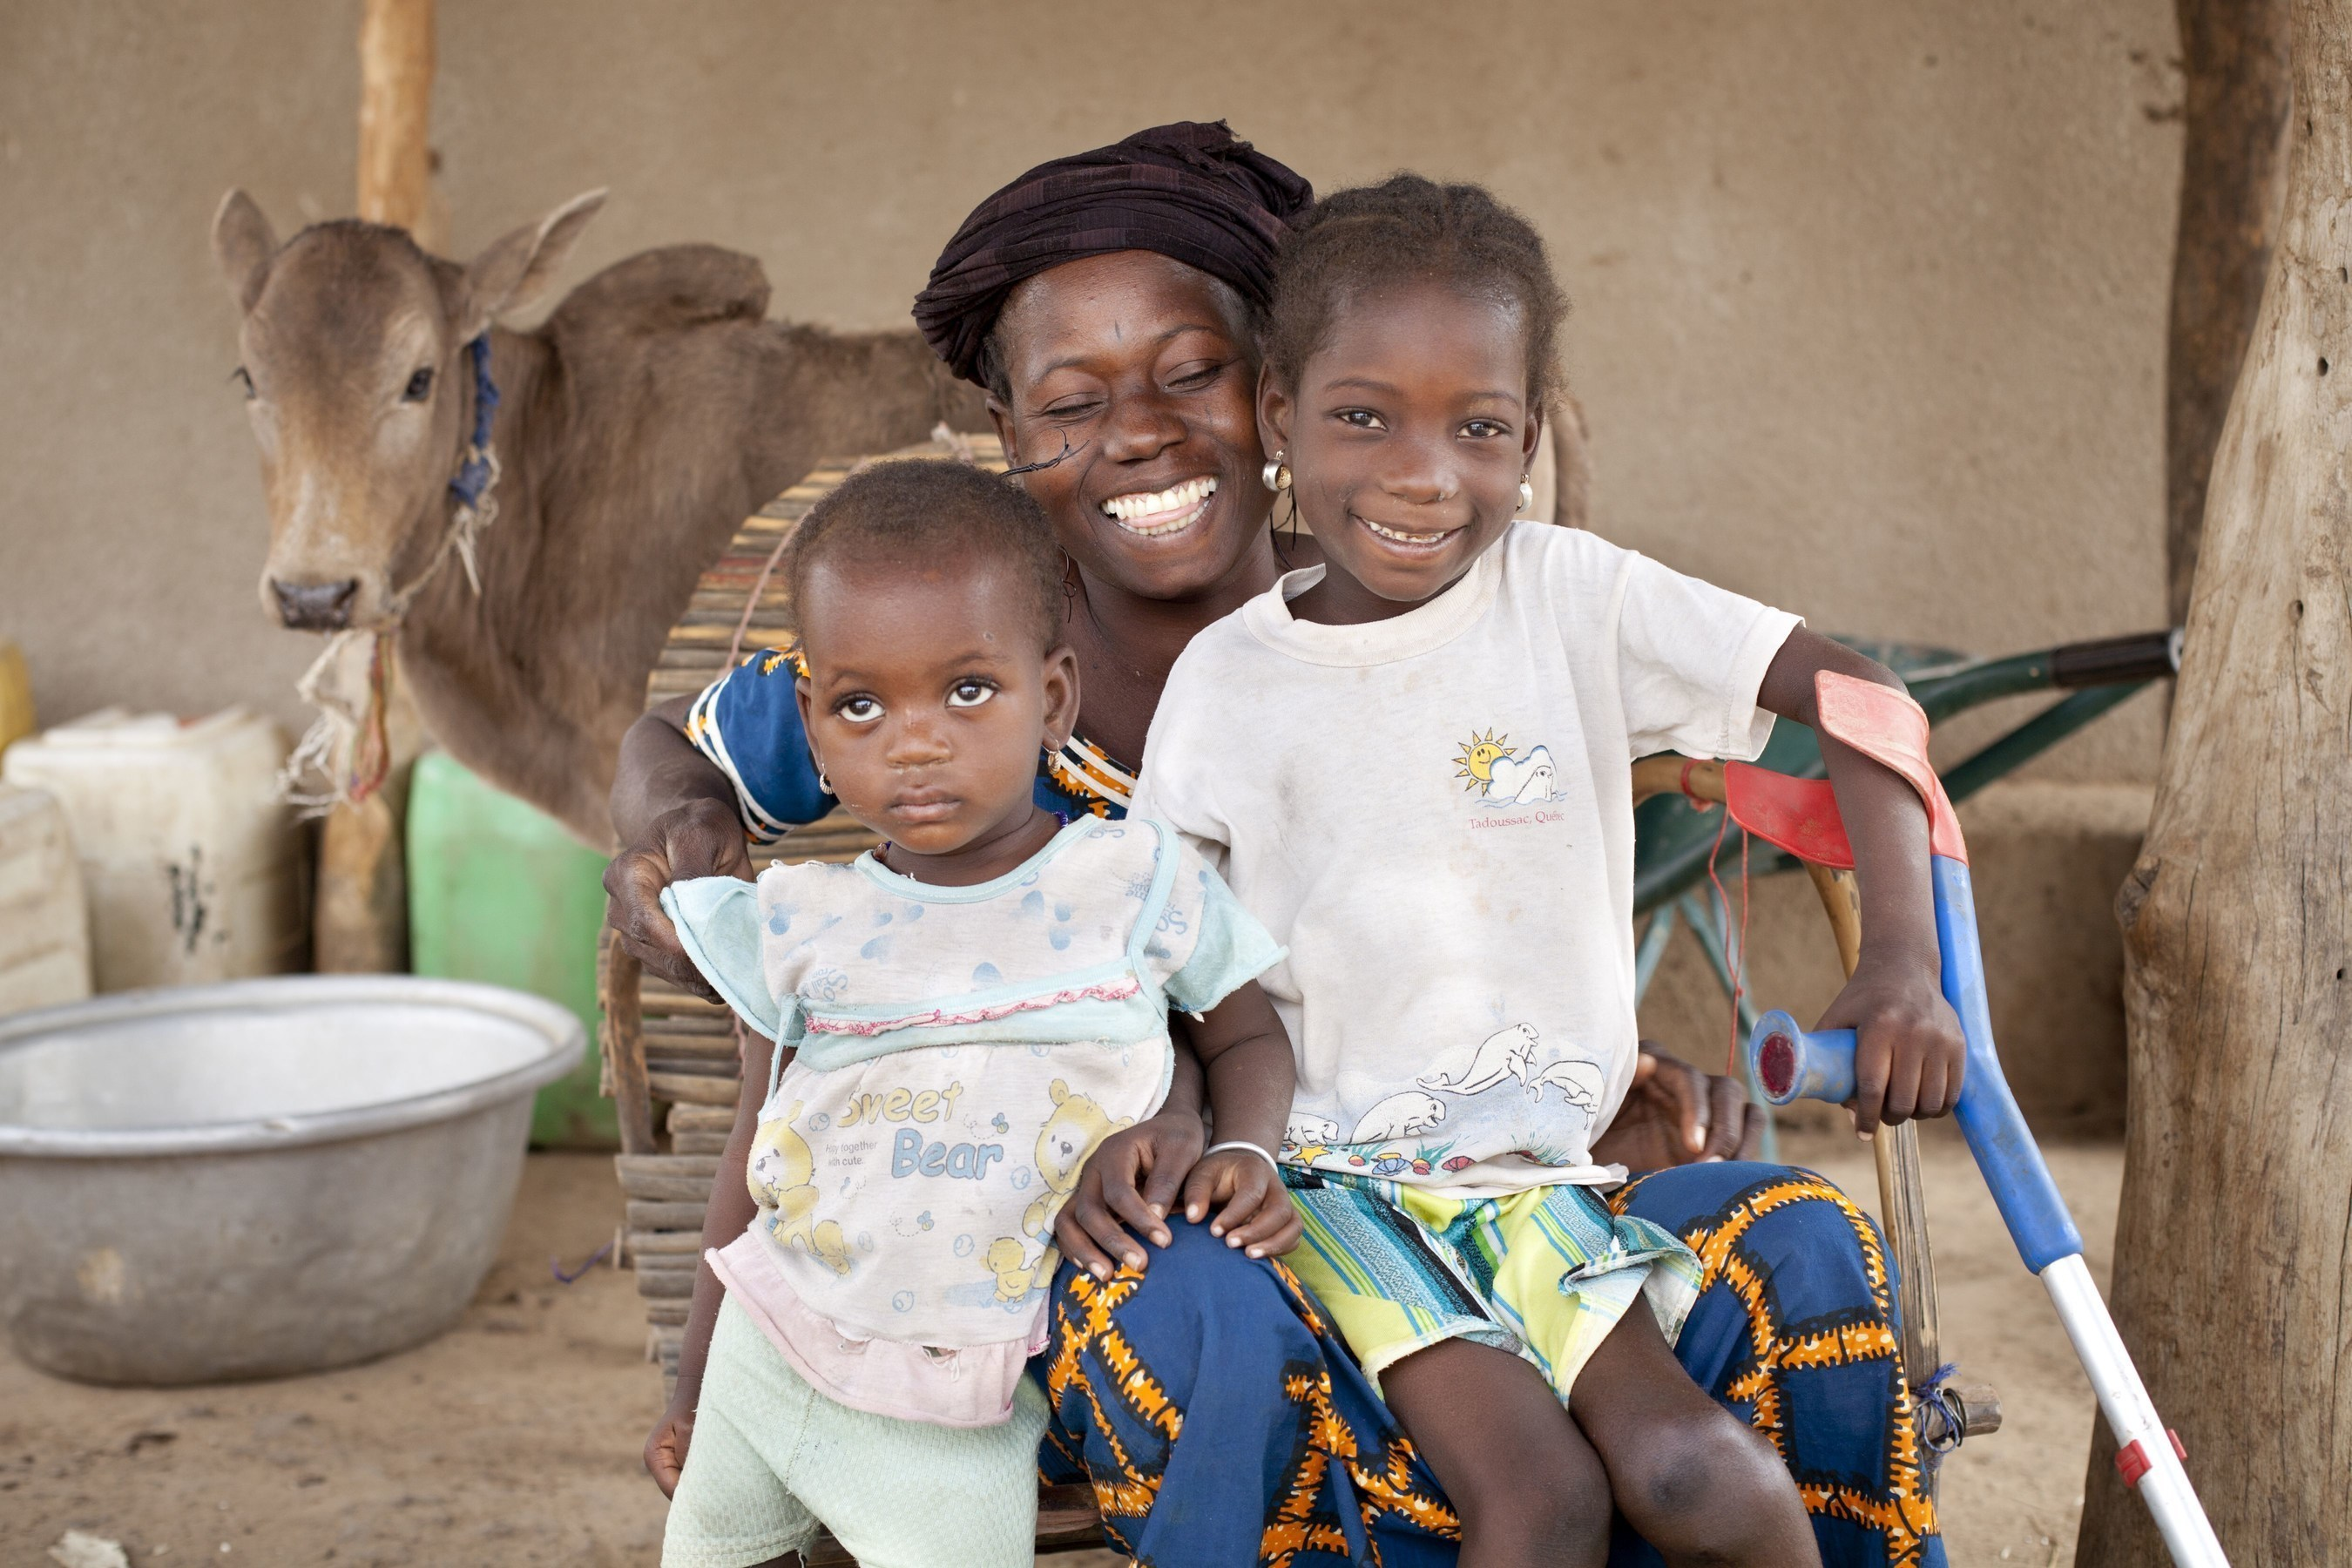 """Roukiatou (on the right-hand side) and her family. Every third child of primary school age without access to education has a disability; 150 million children worldwide live with a disability. Eighty percent of them live in developing countries and 9 out of 10 never have the chance to get an education. In order to break the cycle of poverty, the disability and development organization LIGHT FOR THE WORLD supports global efforts to ensure education for every child. Visit us at: www.light-for-the-world.org. picture credit :  """"Ulrich Eigner"""""""